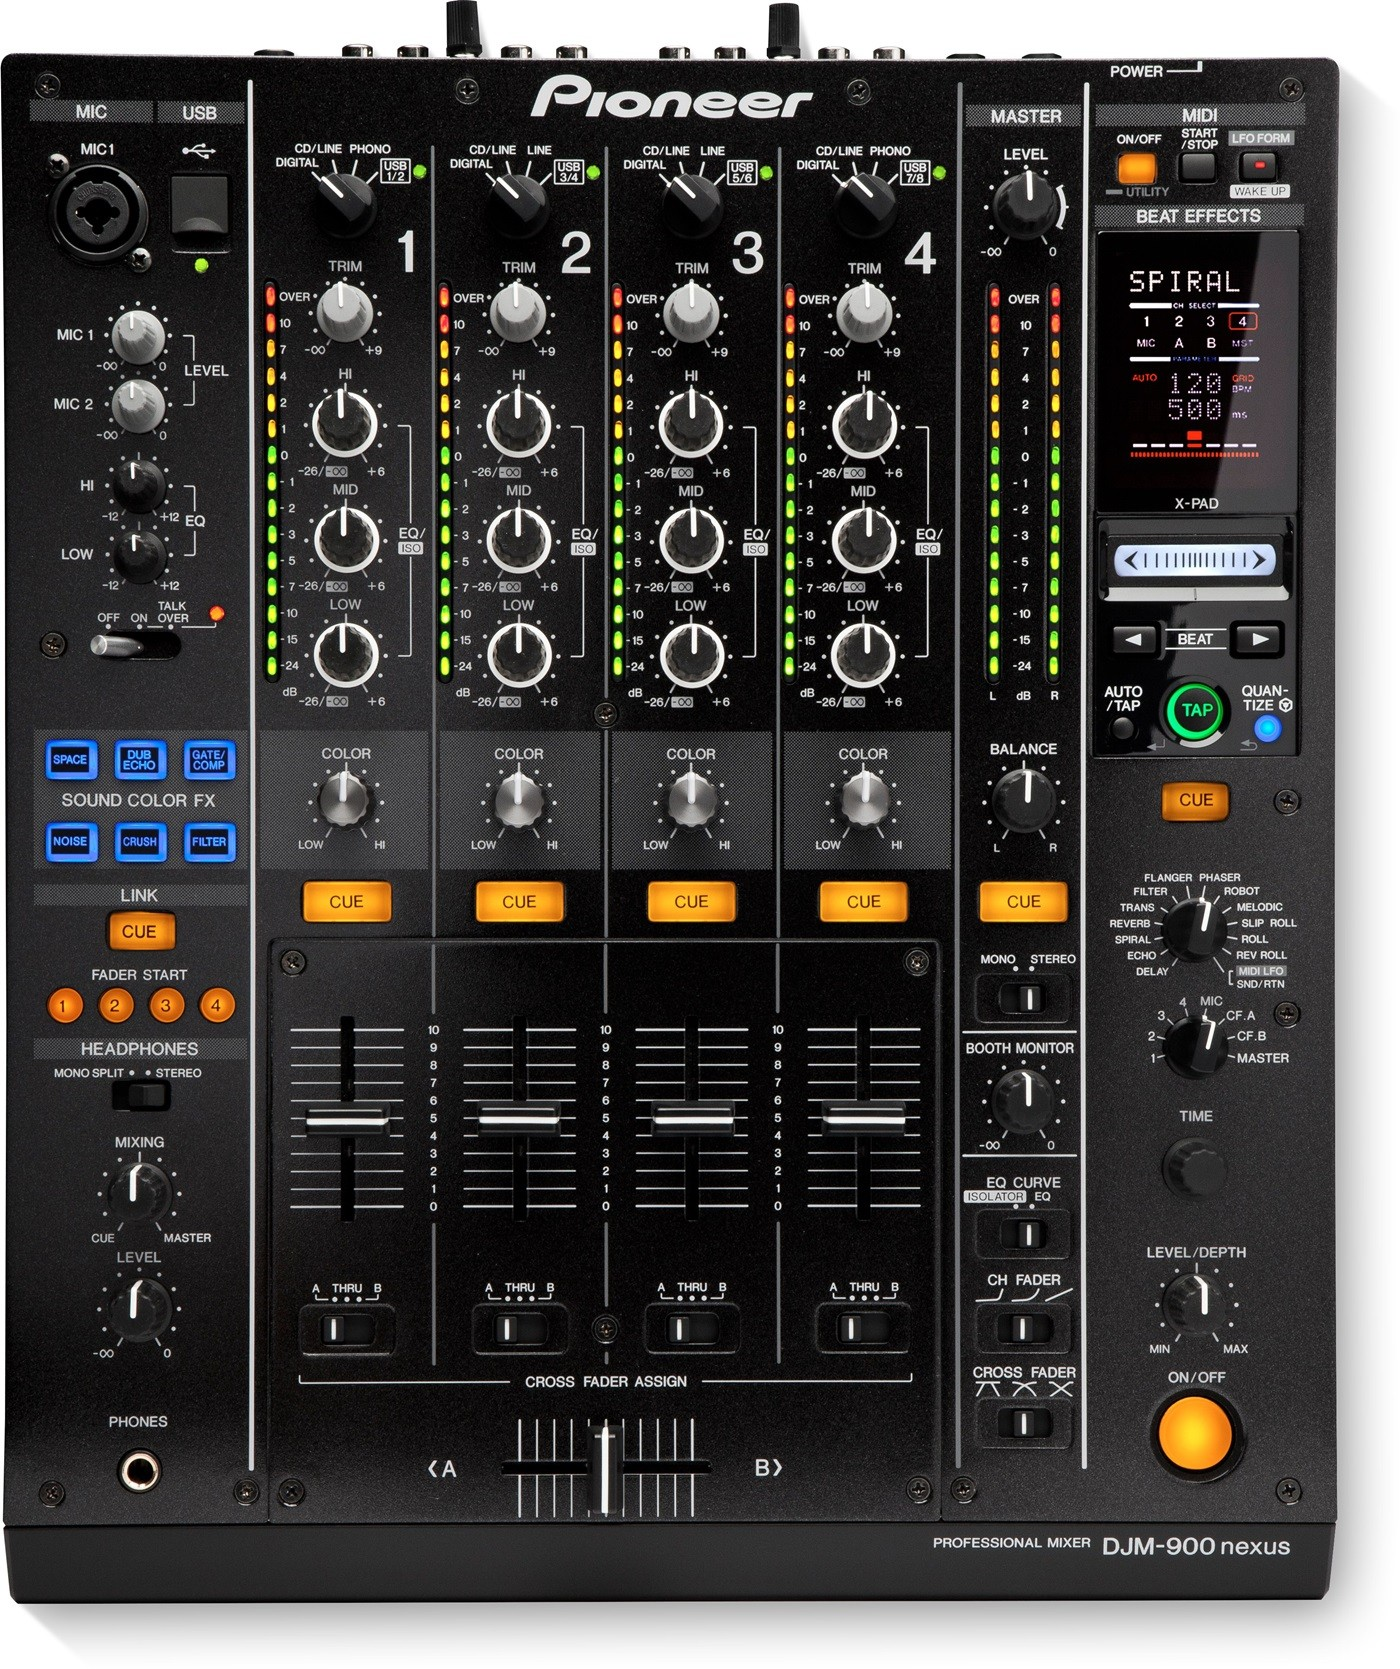 PIONEER DJM-900NXS DJ MIXER DRIVER DOWNLOAD (2019)